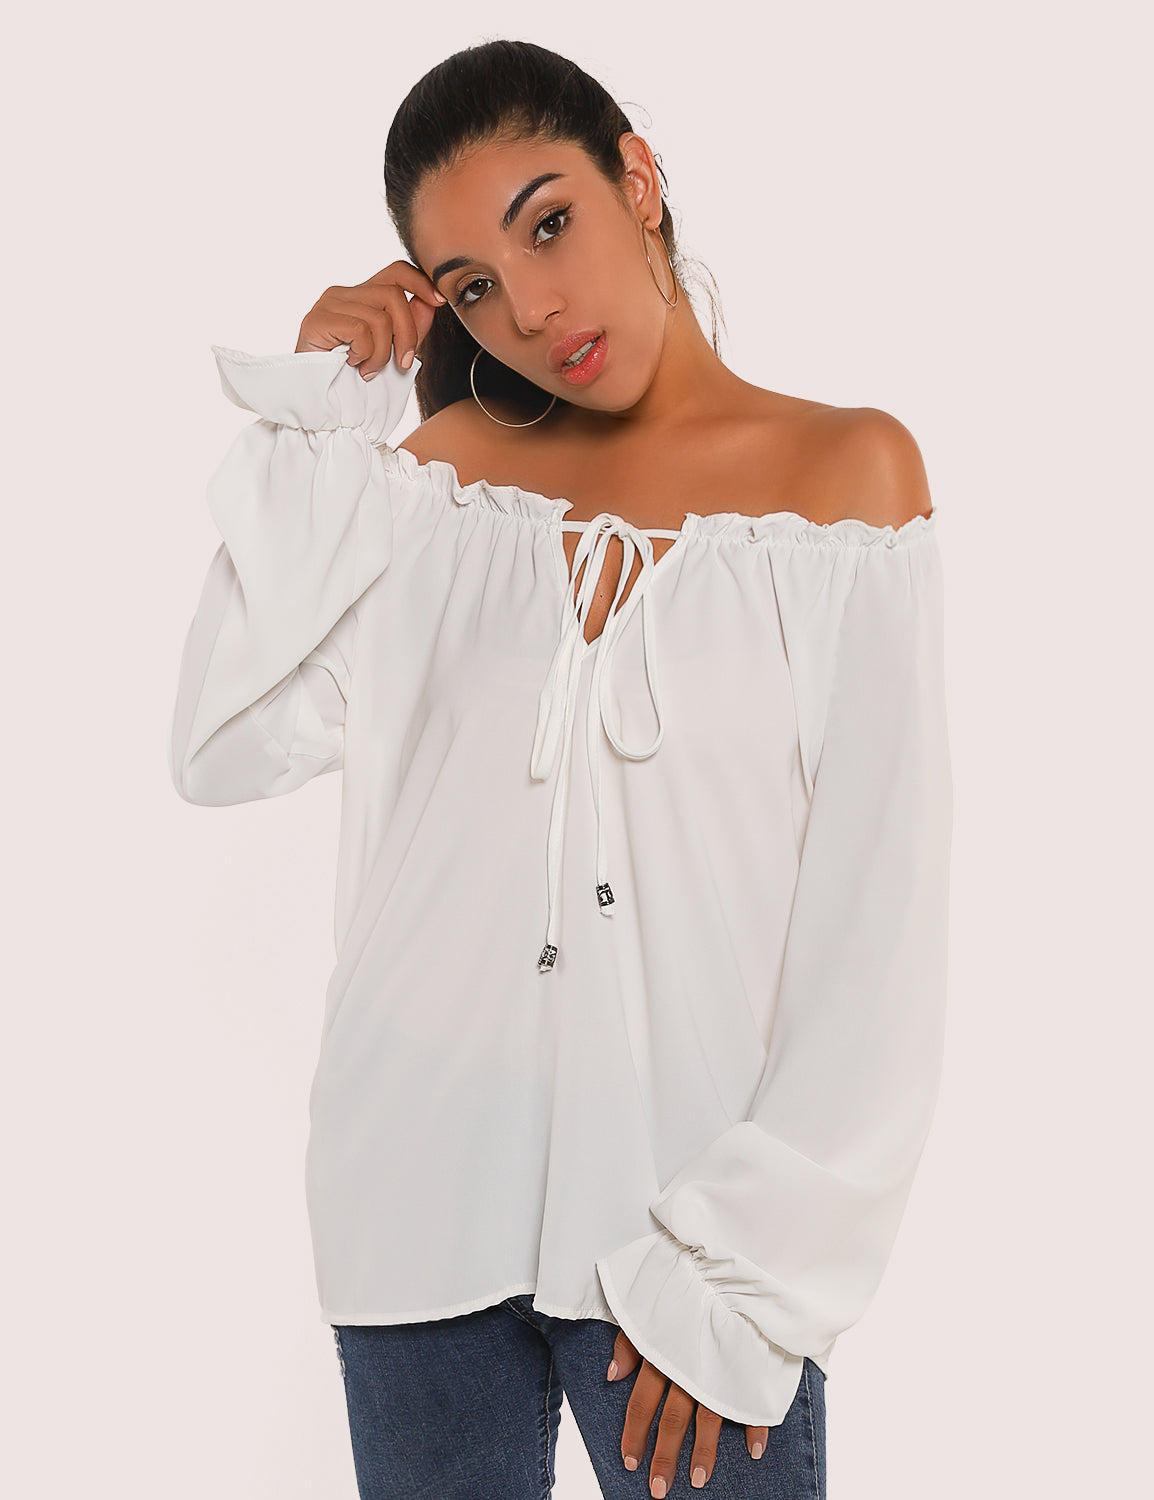 Blooming Jelly_Brand New Life Off the Shoulder Blouse_White_153247_19_Elegant Women Daily Wear_Tops_Blouse